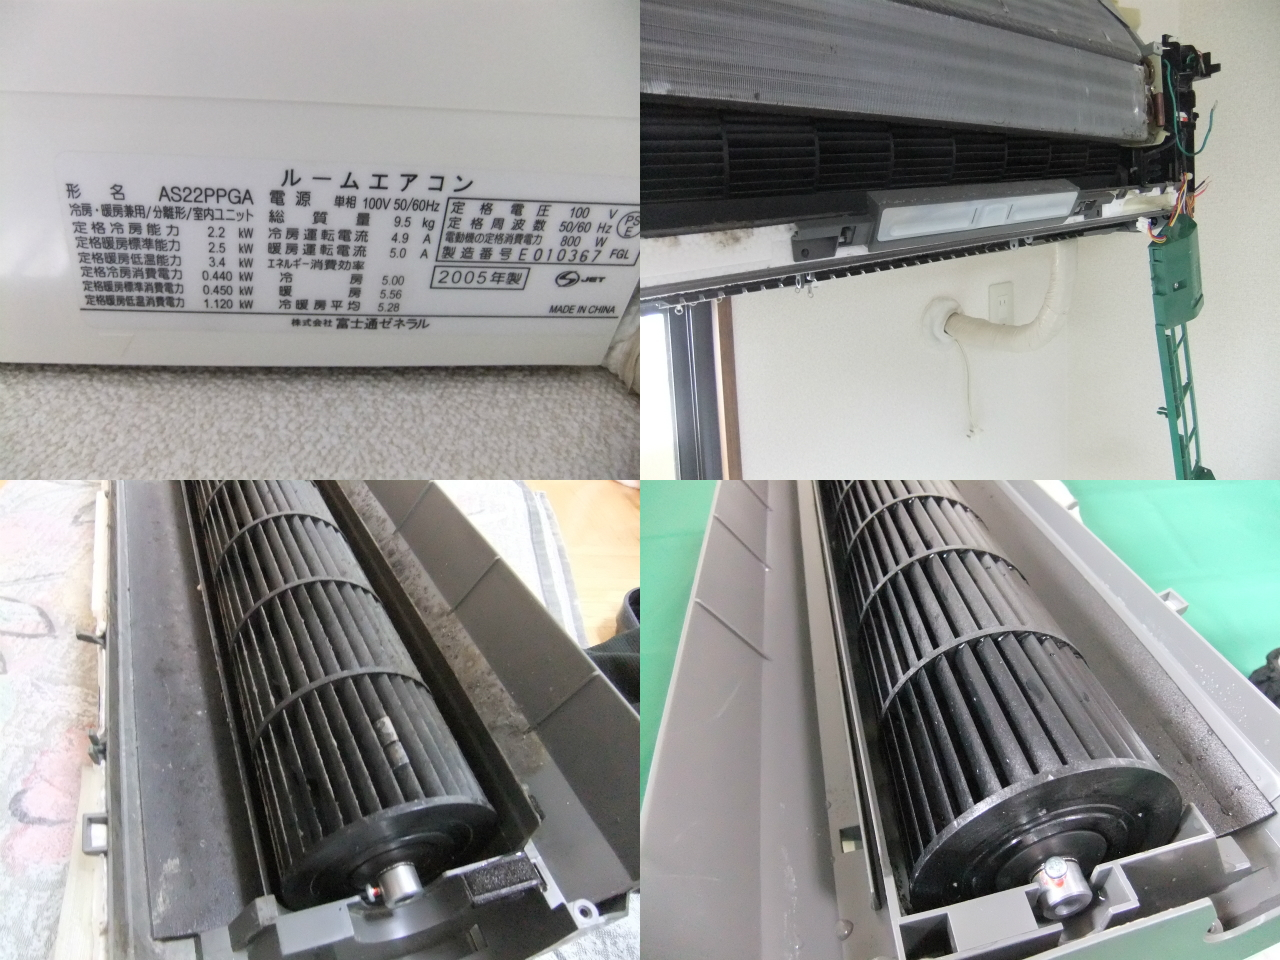 http://ajras.net/images/120702-aircon2.jpg